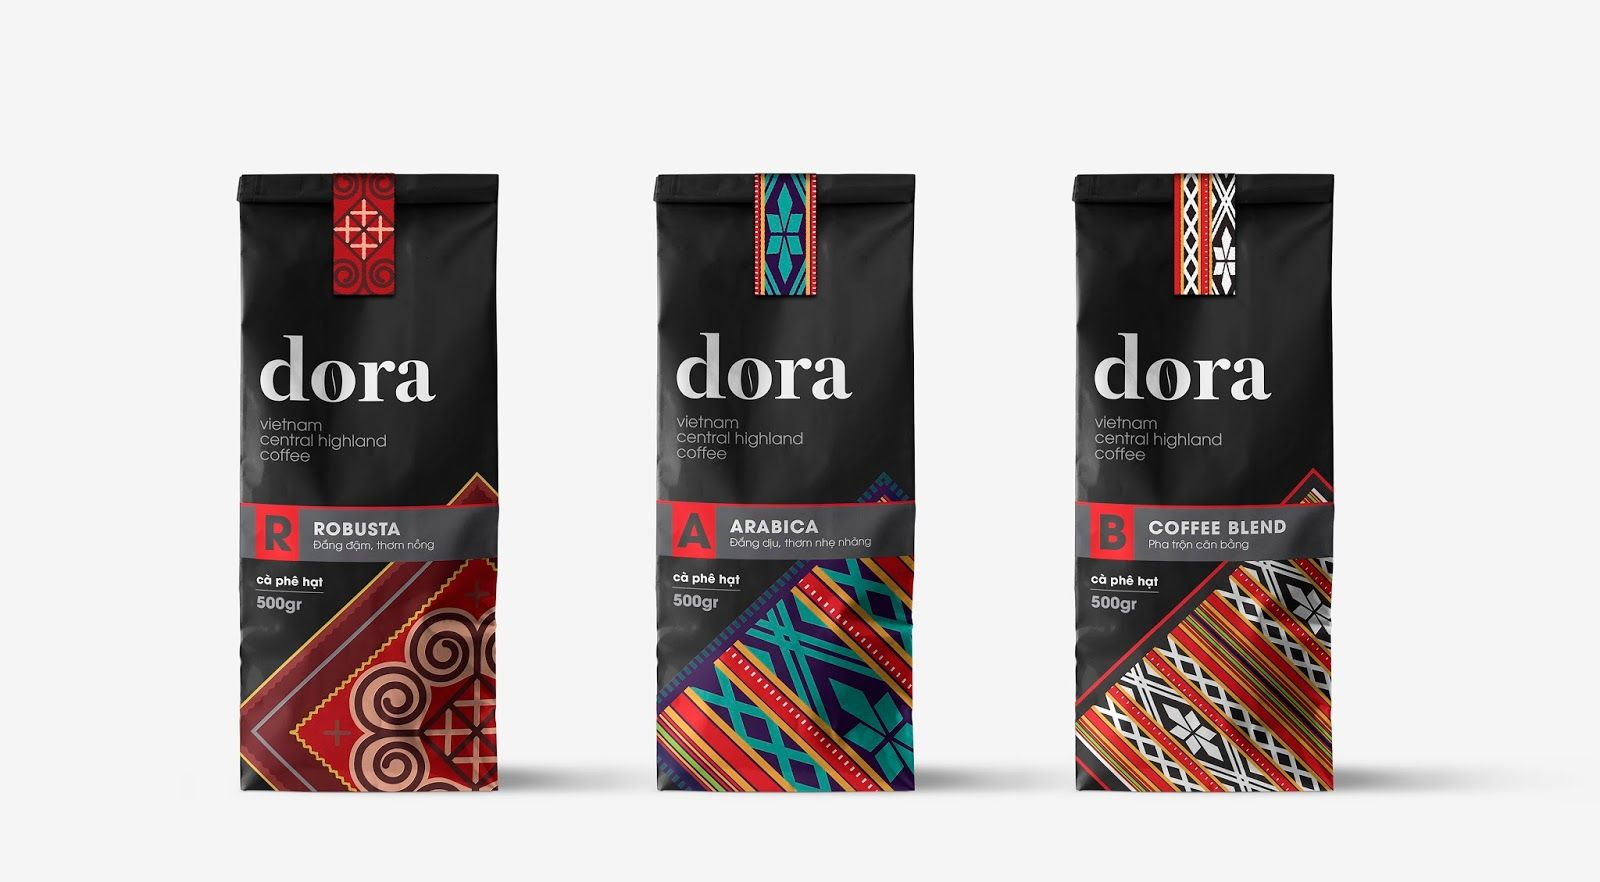 Dora Vietnam Central Highland Coffee Highlands Coffee Coffee Branding Blended Coffee